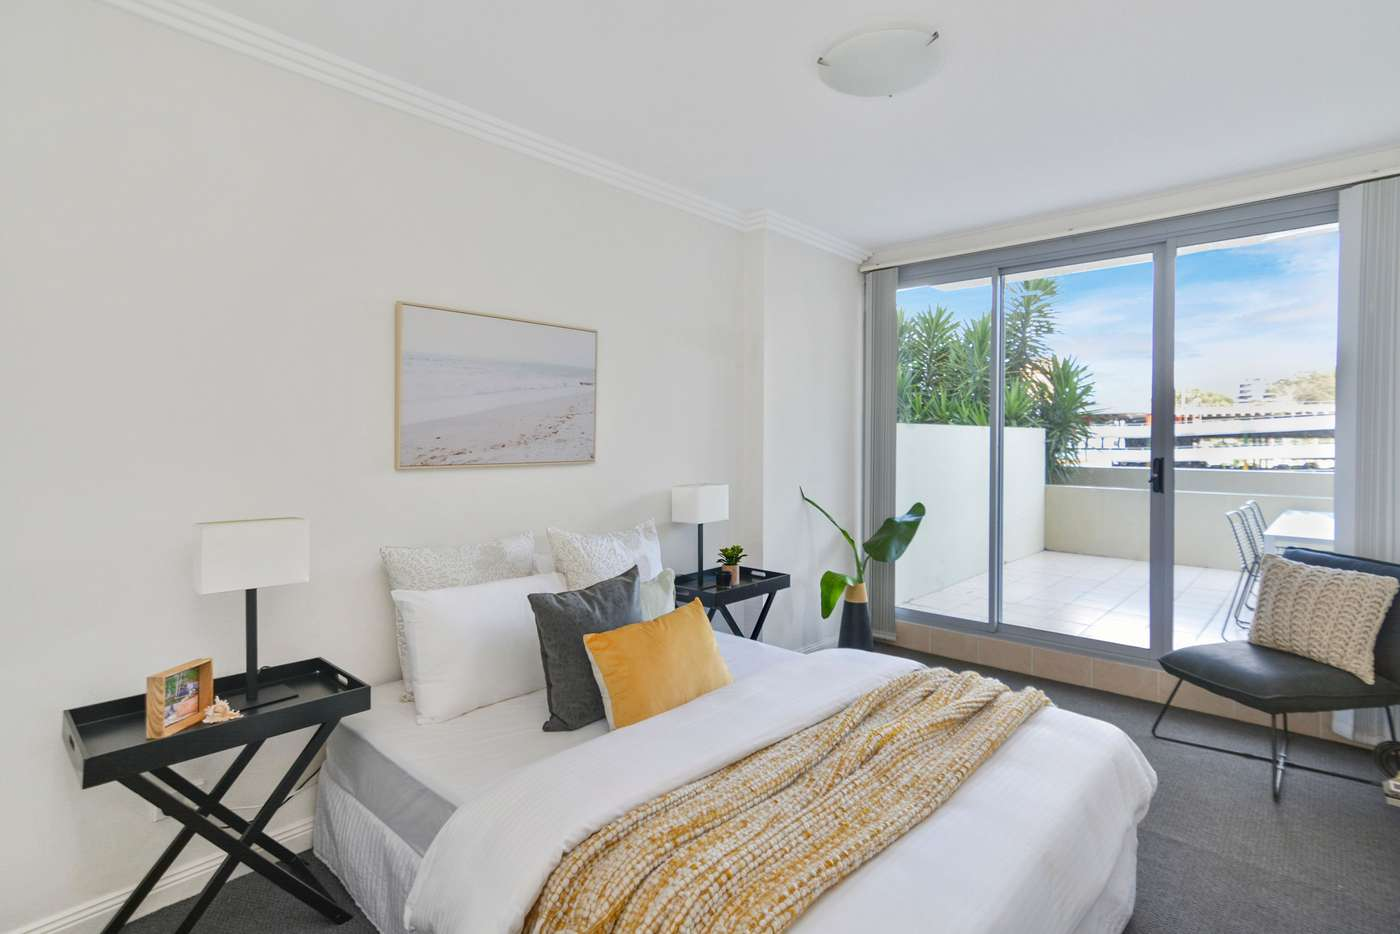 Sixth view of Homely apartment listing, 8/12 Baker Street, Gosford NSW 2250